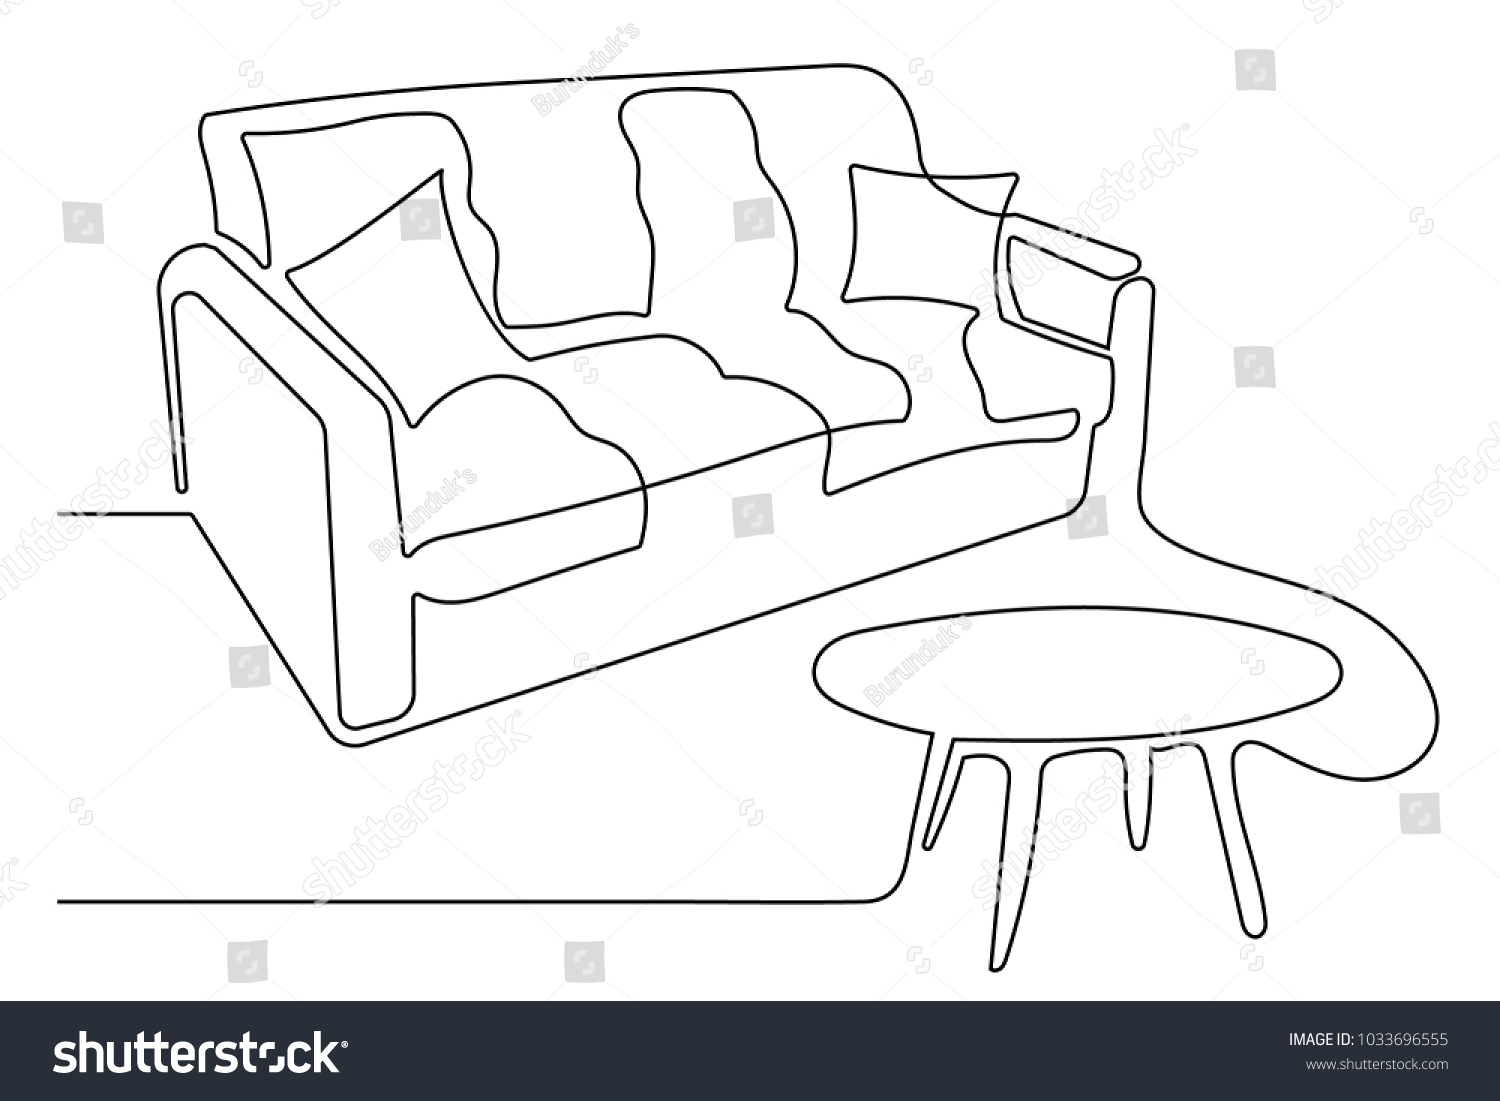 Fabulous Sofa Cushions Beside Coffee Table Interior Stock Vector Squirreltailoven Fun Painted Chair Ideas Images Squirreltailovenorg